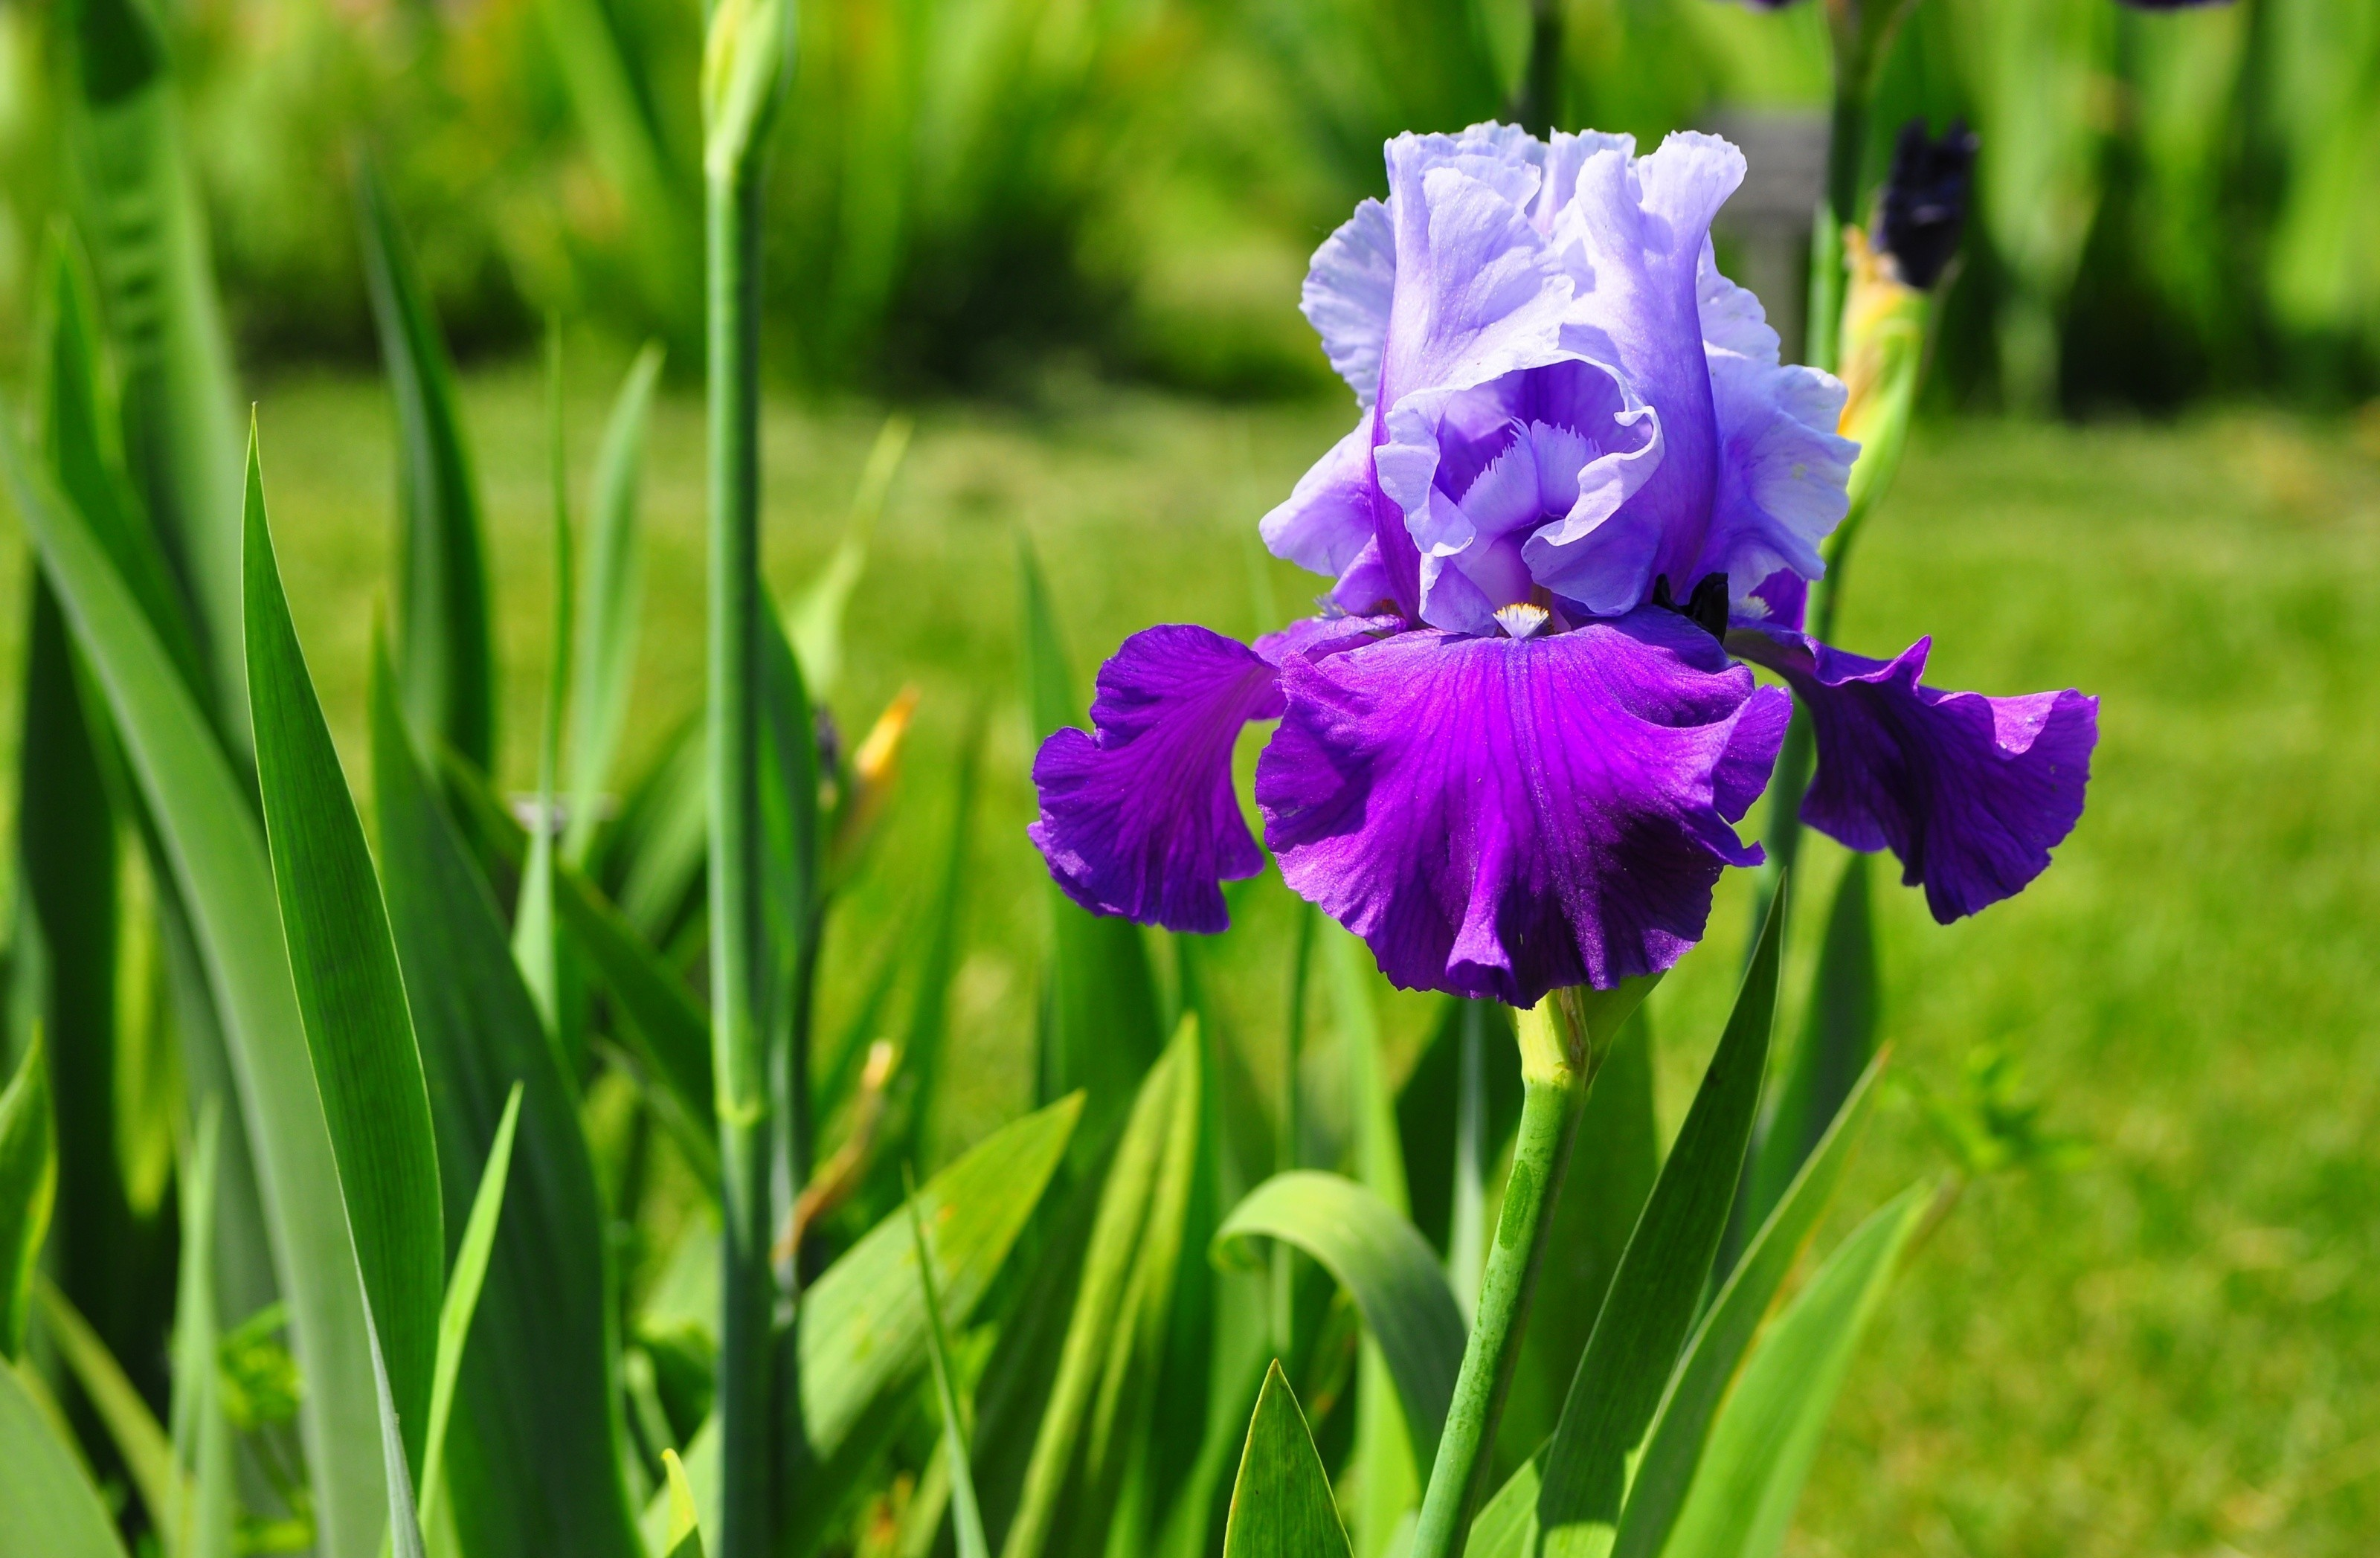 56 iris hd wallpapers background images wallpaper abyss hd wallpaper background image id337119 izmirmasajfo